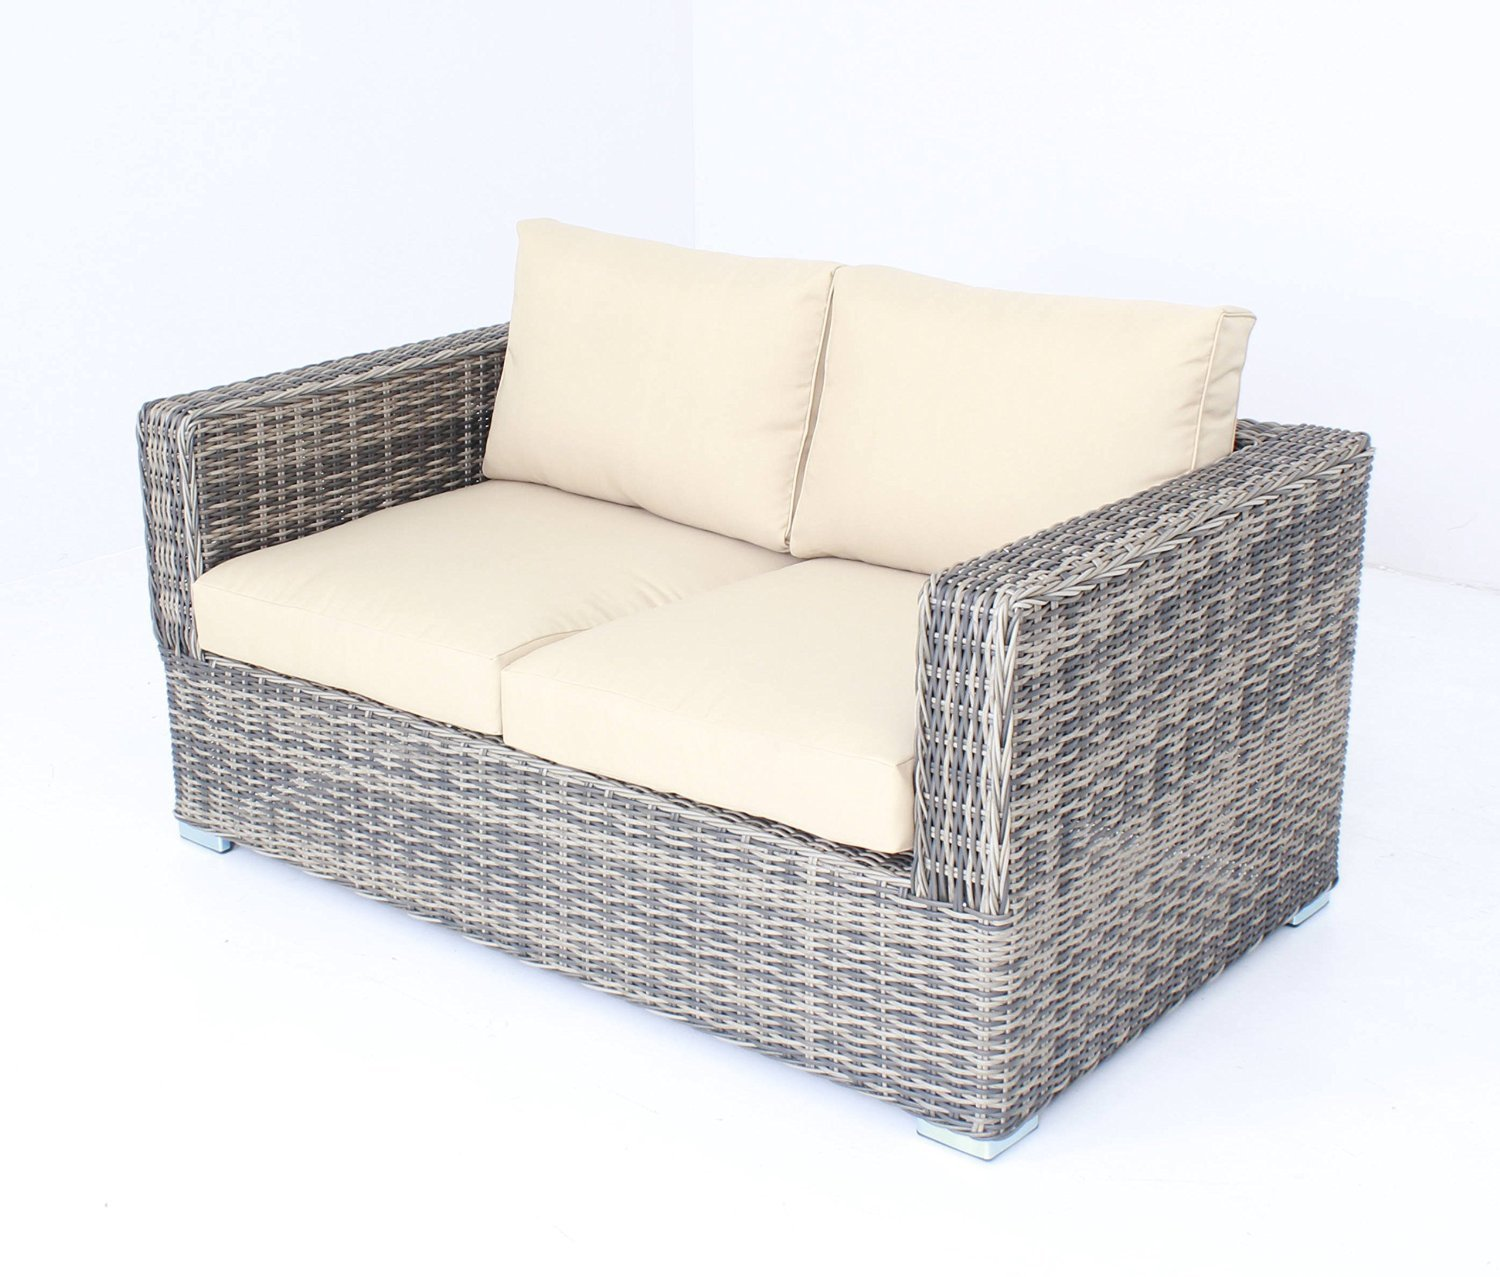 Amazon: Outdoor Patio Sofa Sectional Wicker Furniture 5pc Couch Set:  Kitchen & Dining